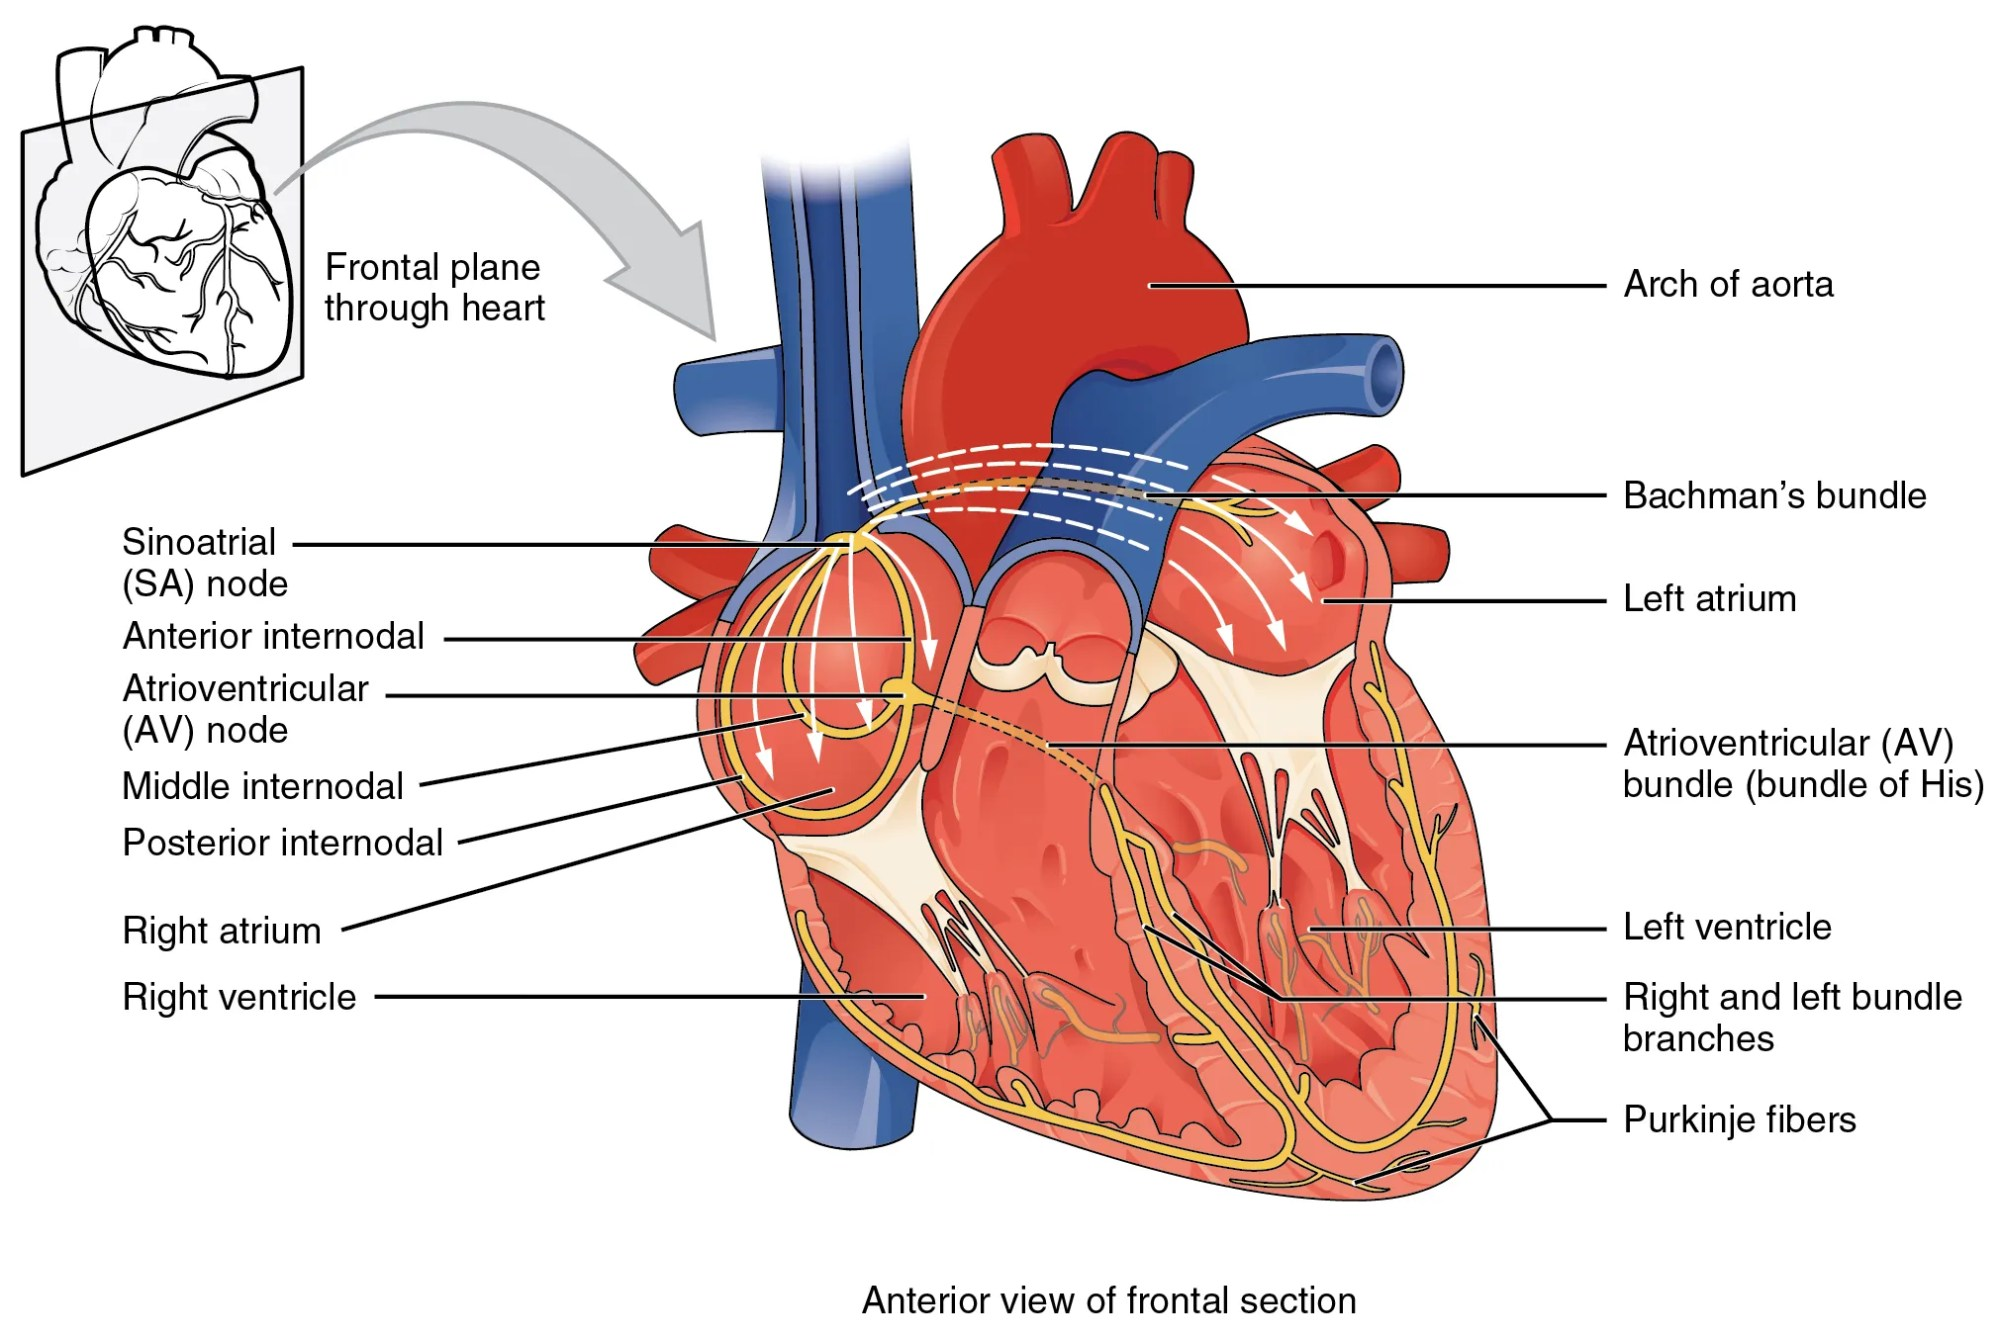 hight resolution of this image shows the anterior view of the frontal section of the heart with the major